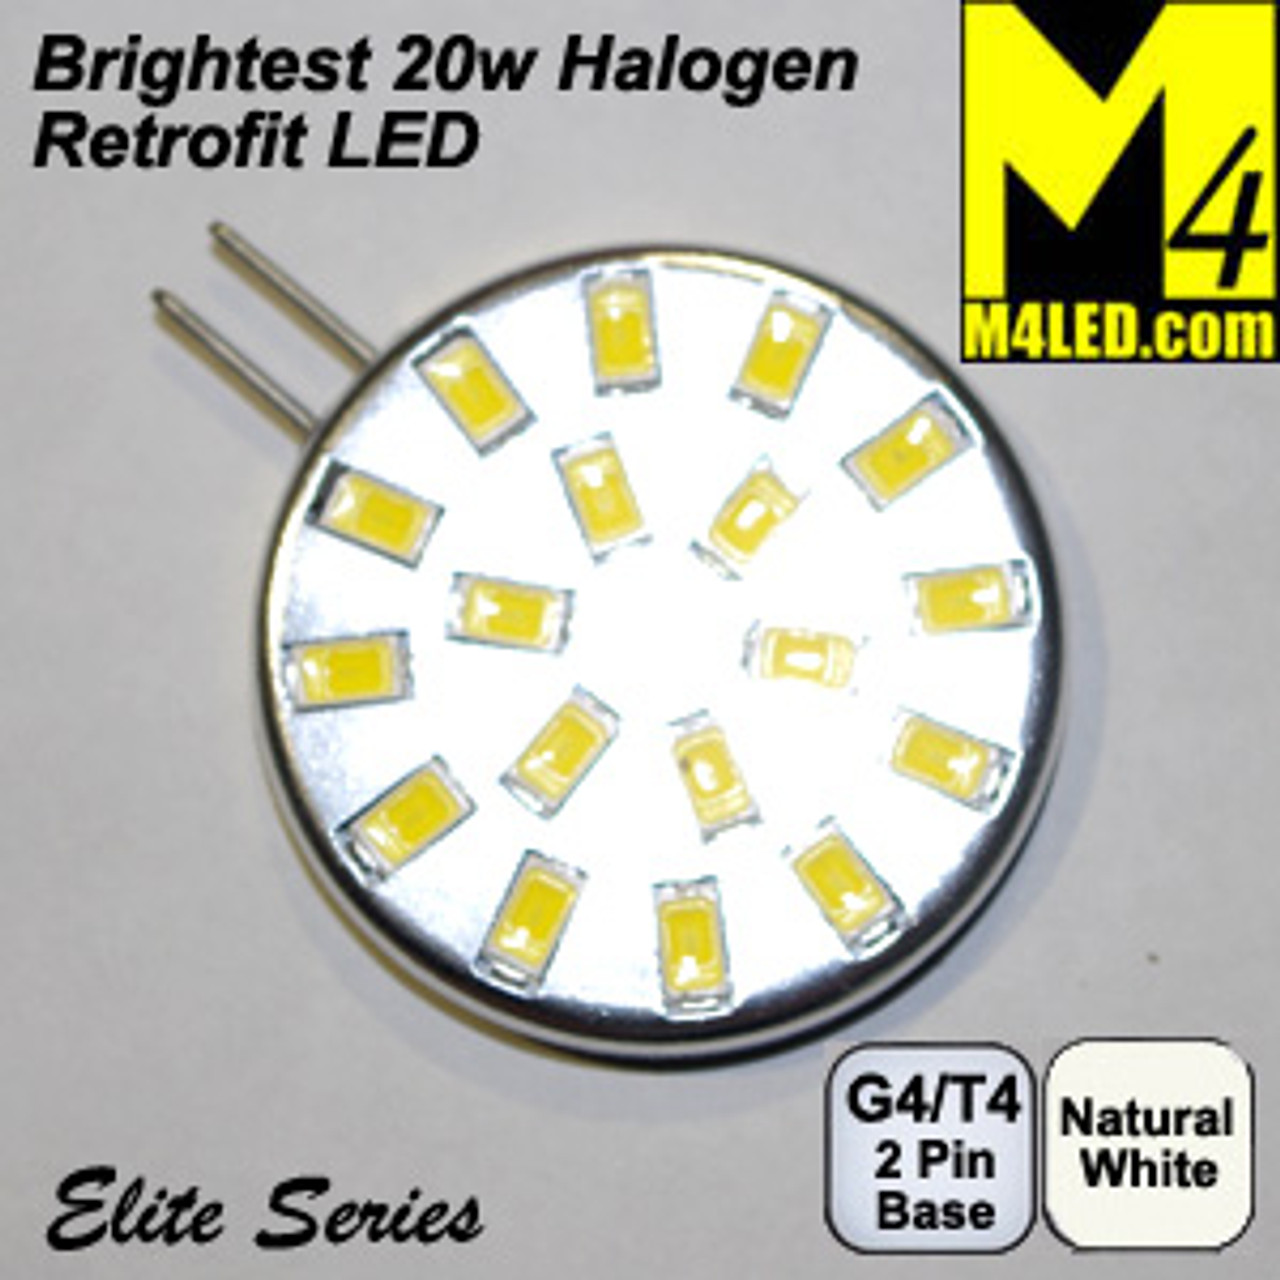 G4-18-5630-SIDE-NW Natural White Elite Series G4 / T3  Samsung 5630 LEDs Side Pins to replace 20w Halogen